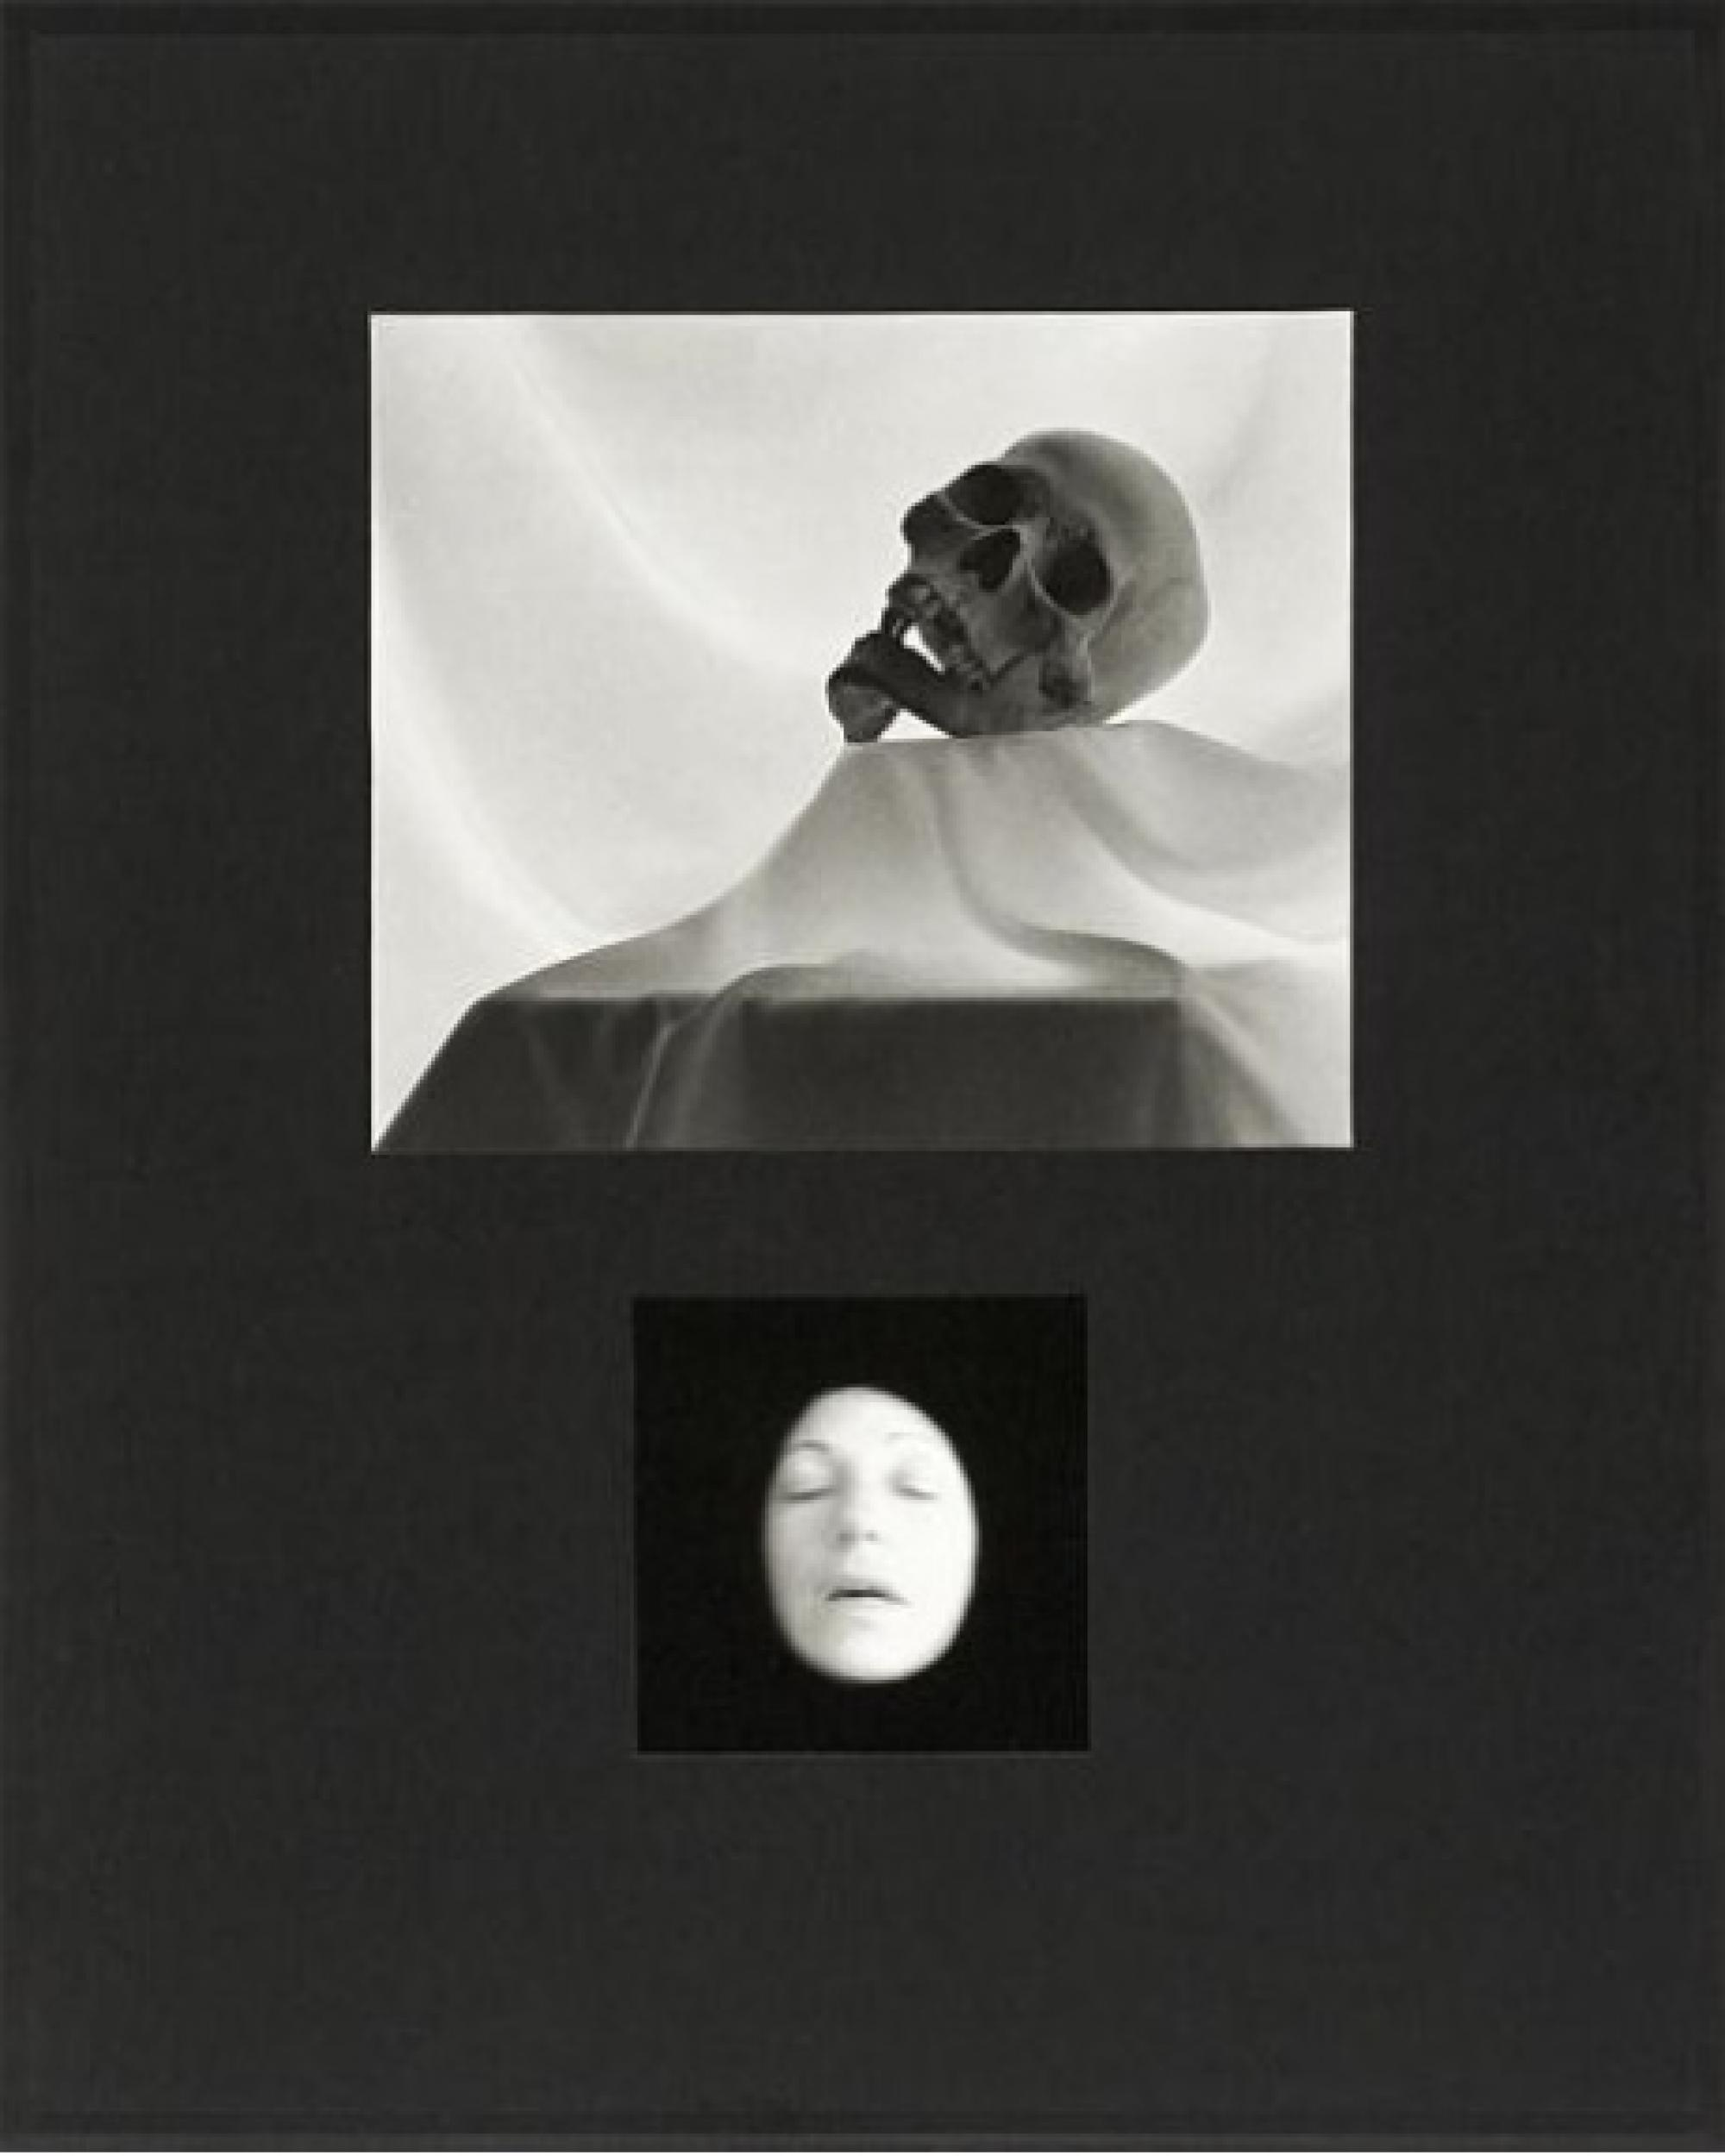 Dispossession  is a series of 12 composite works in which human skulls are set against a luminous white fabric, in counterpoint with Stern's face portrayed as a death mask beneath them. The theme of Dispossession is not actual death, but the mind's preocc